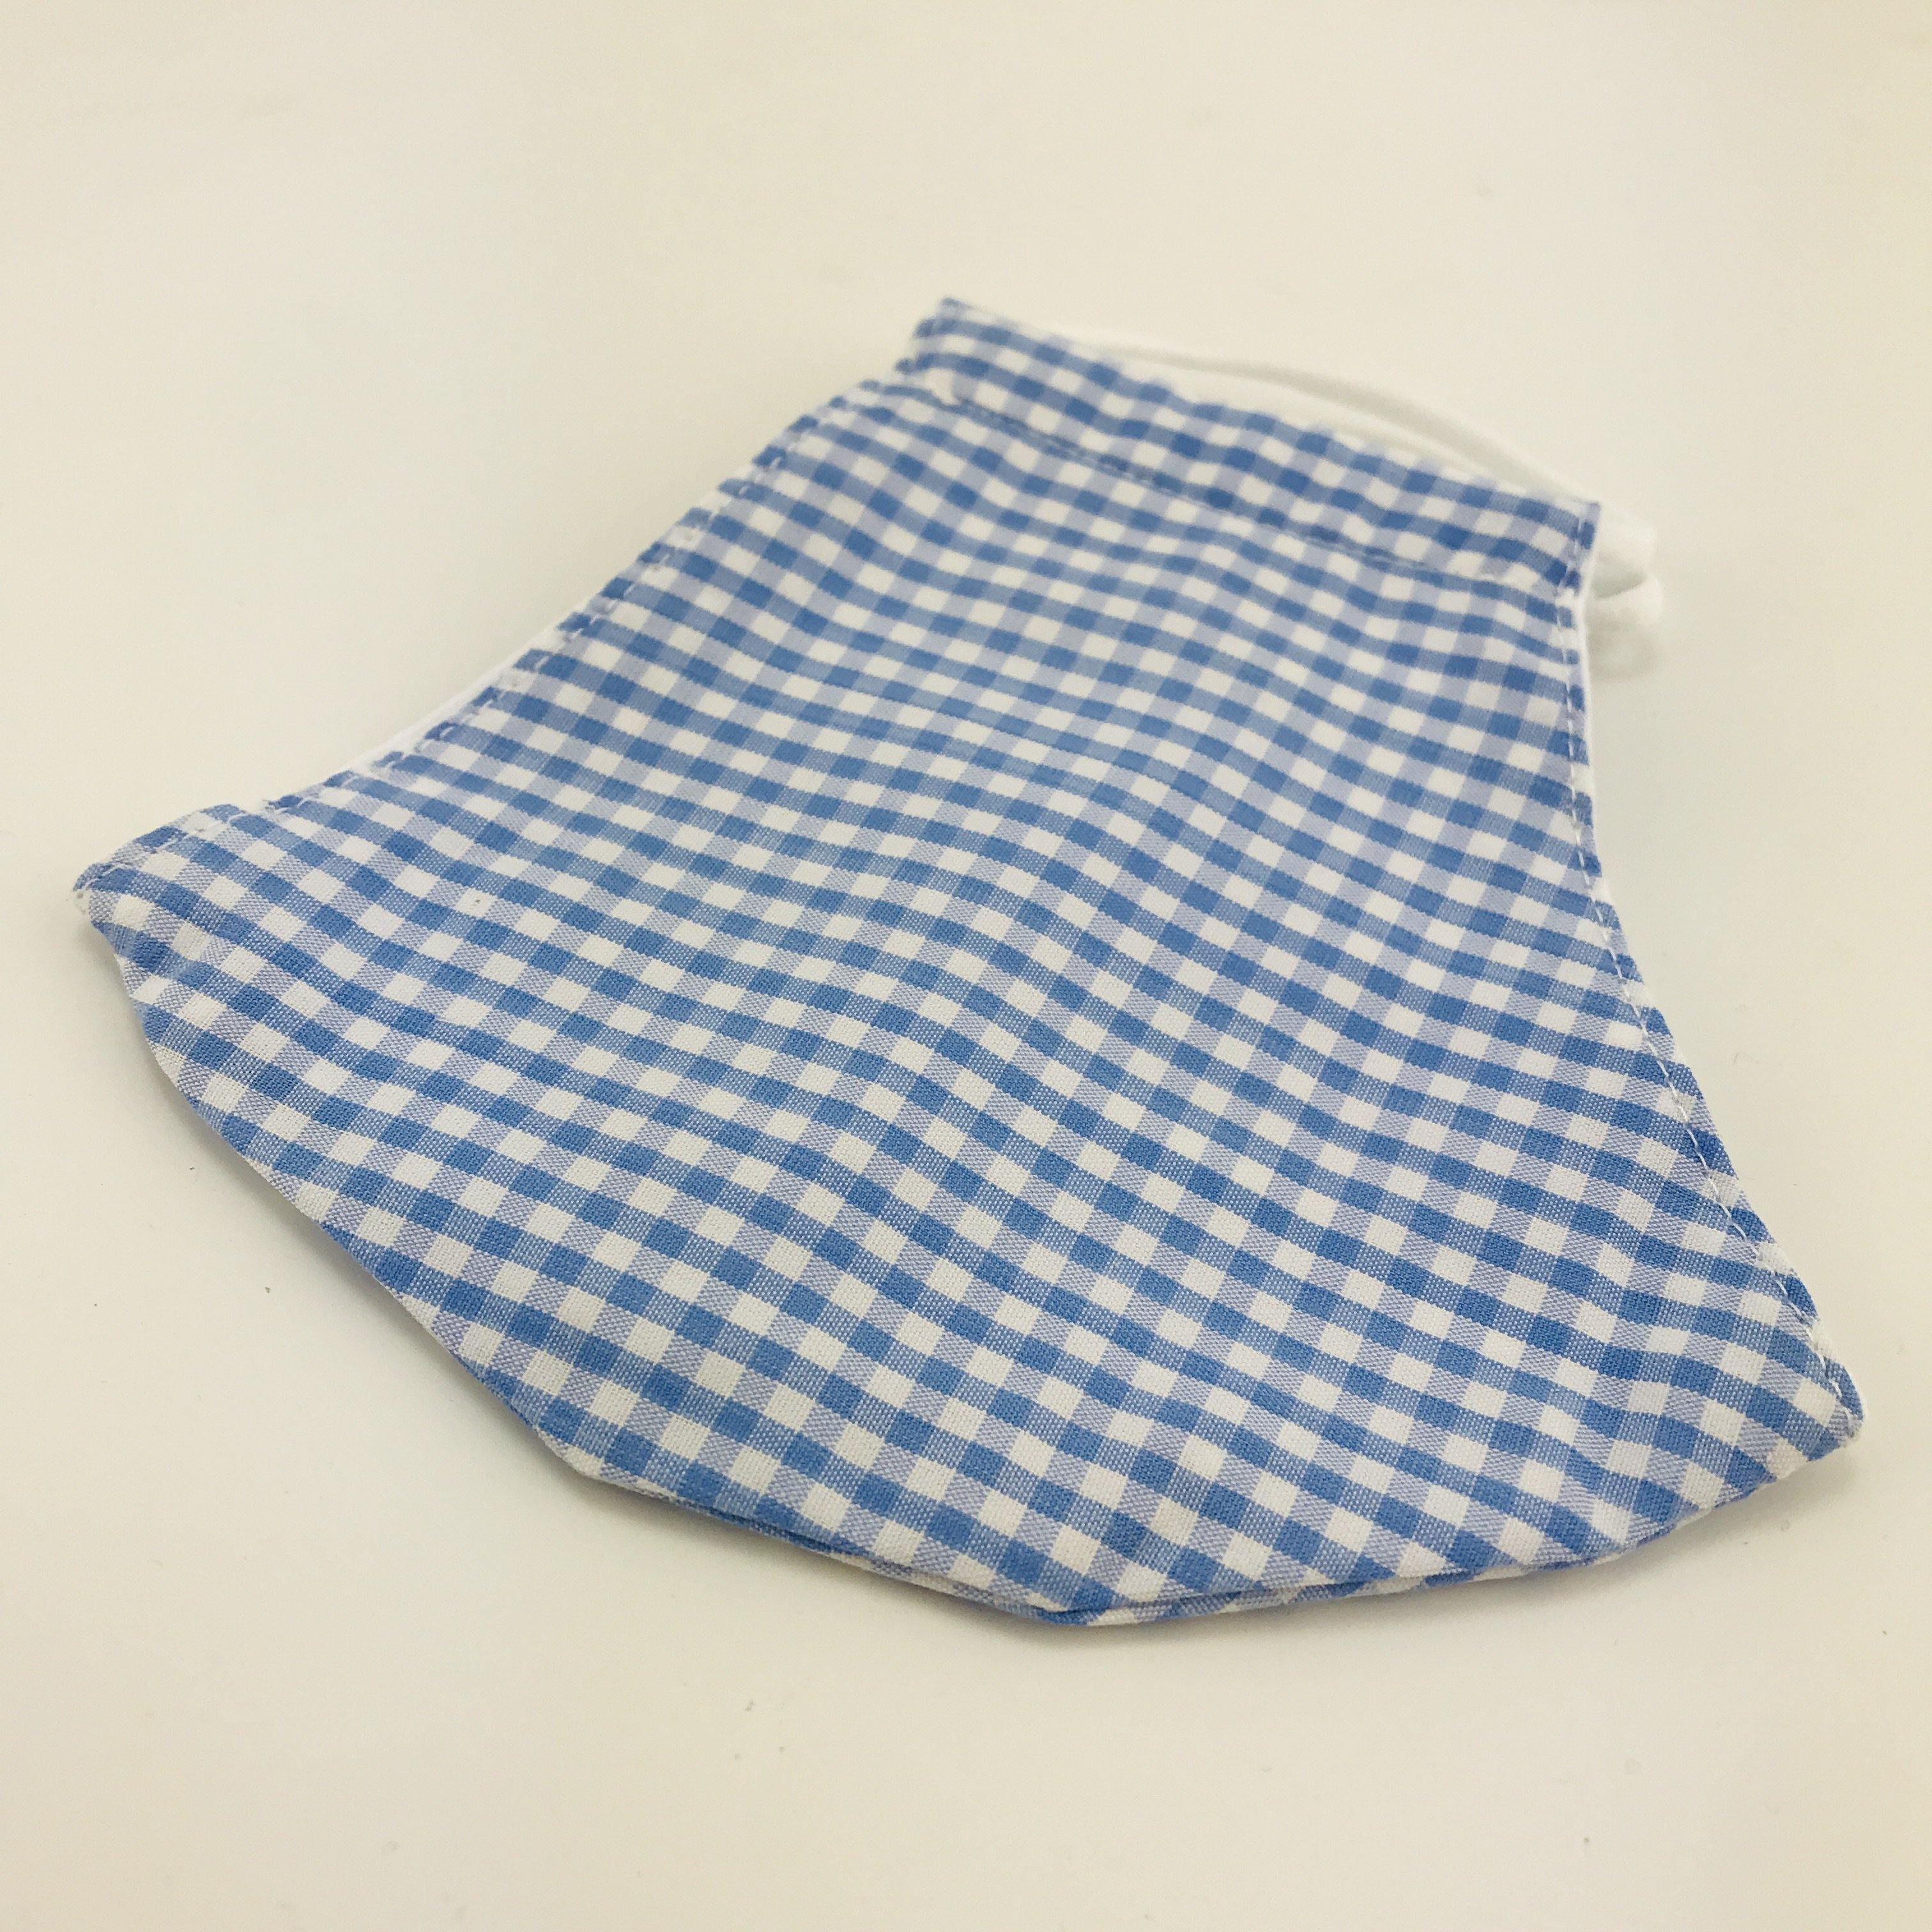 Face Mask Gingham Blue Check, Skin Care Masks & Peels by Insideout